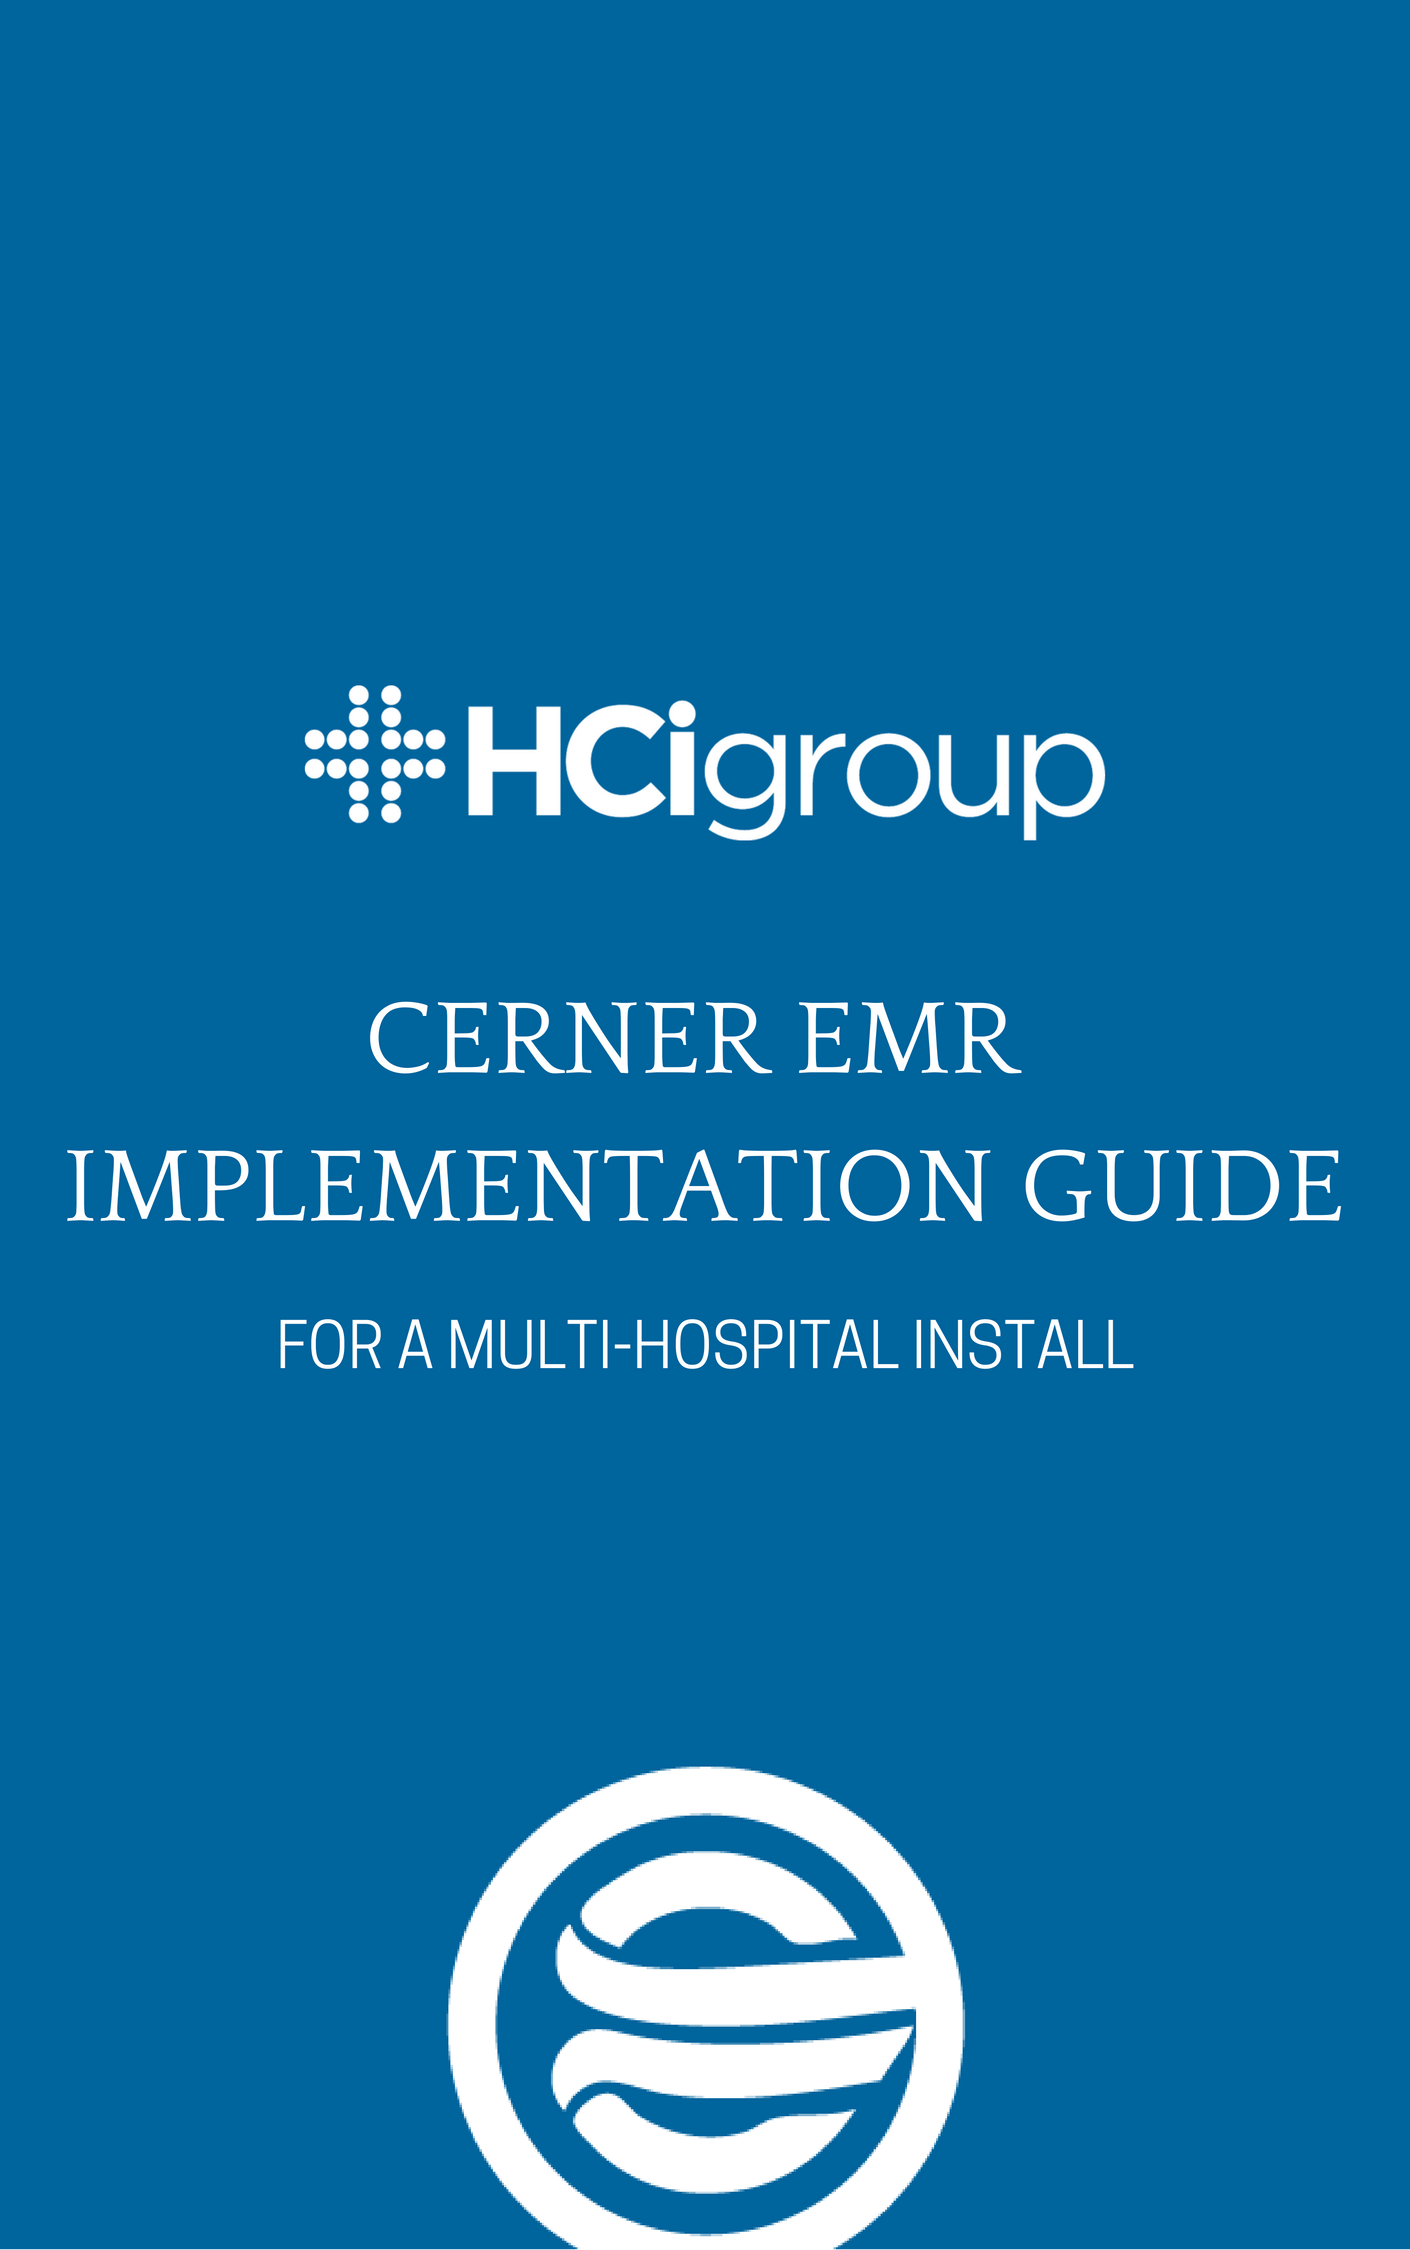 Download the Cerner Implementation Guide